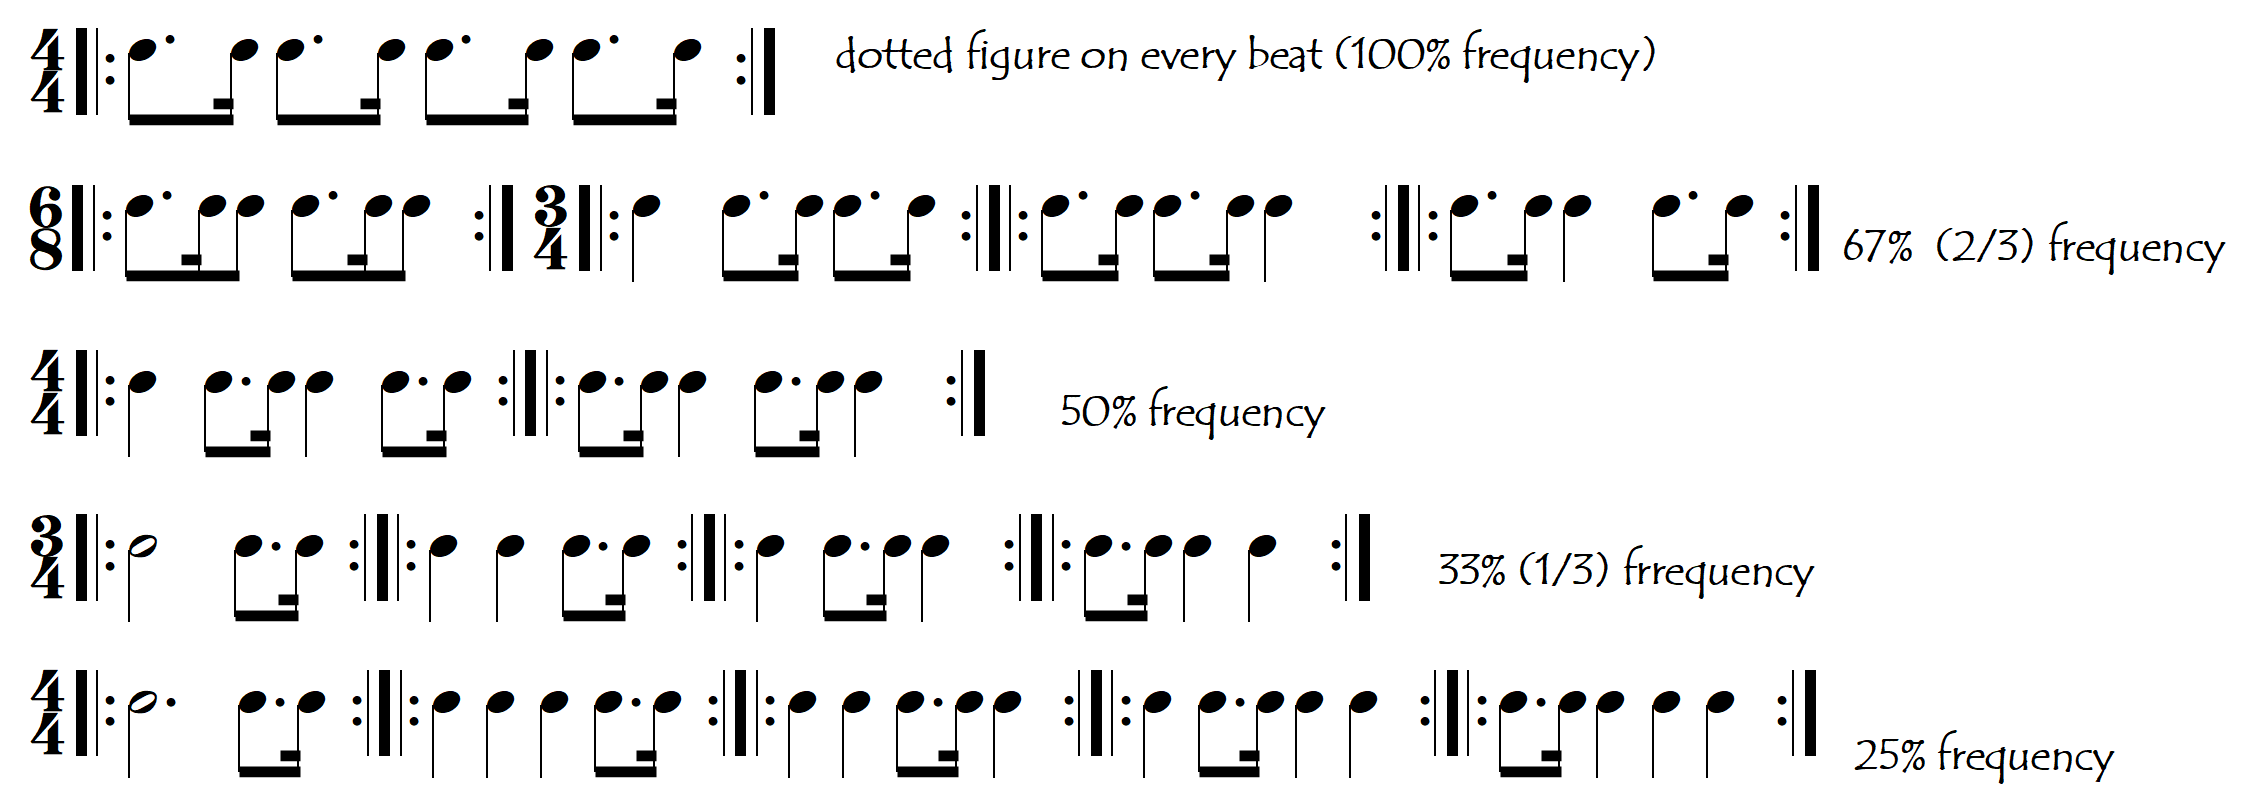 dotted frequencies